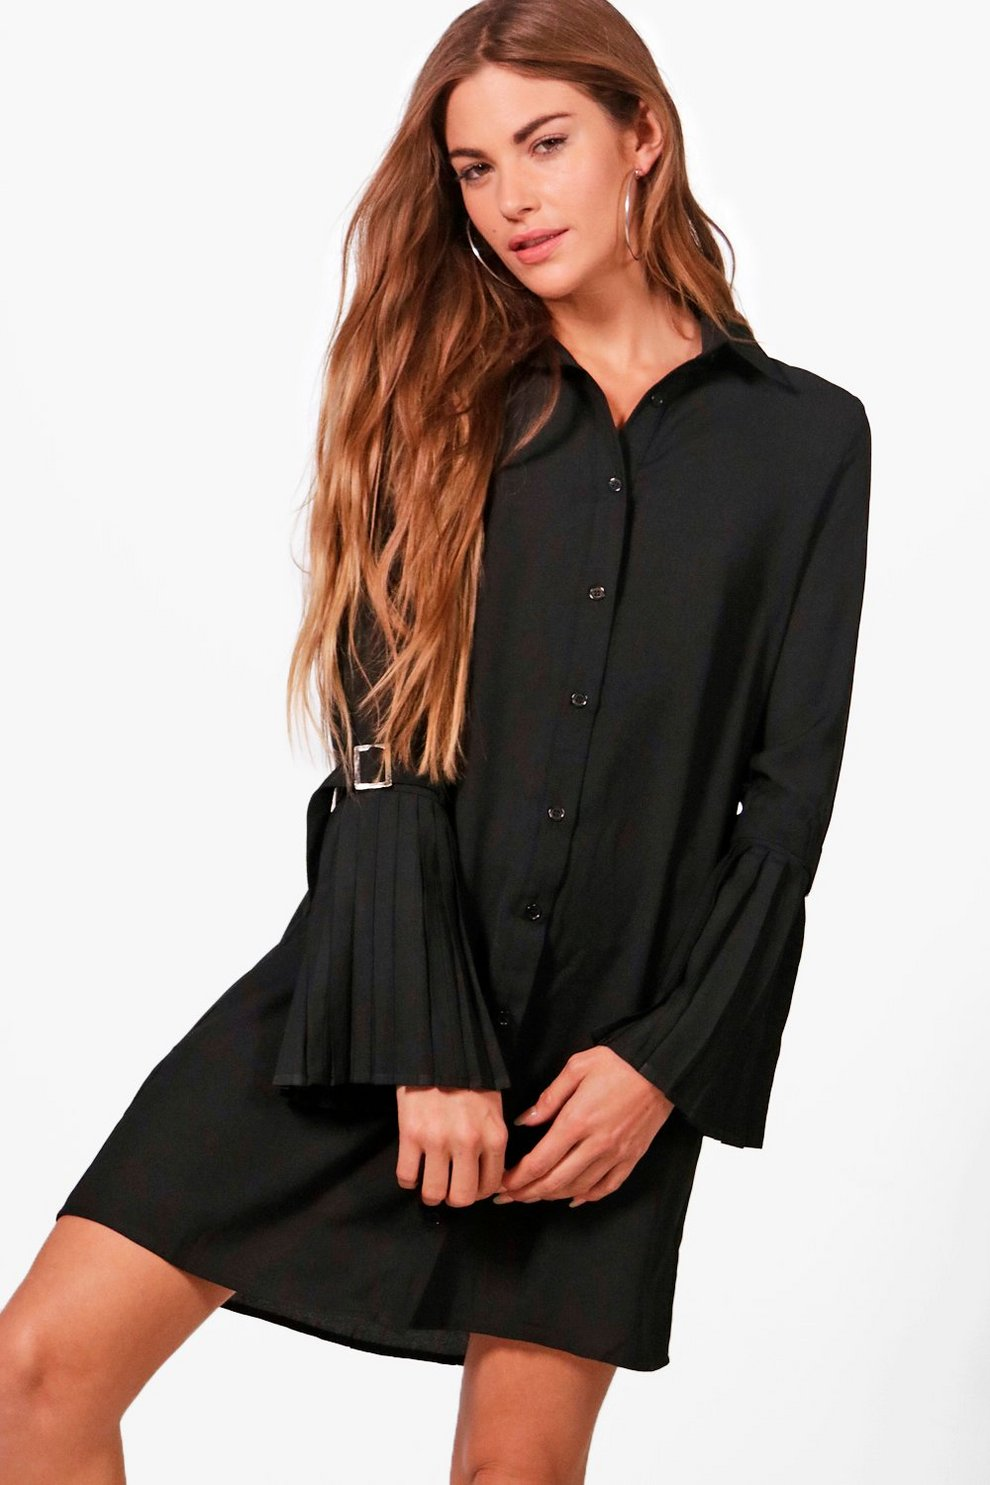 Boohoo Utility Pleated Sleeve Shirt Dress 2018 Newest Cheap Online rqyZs